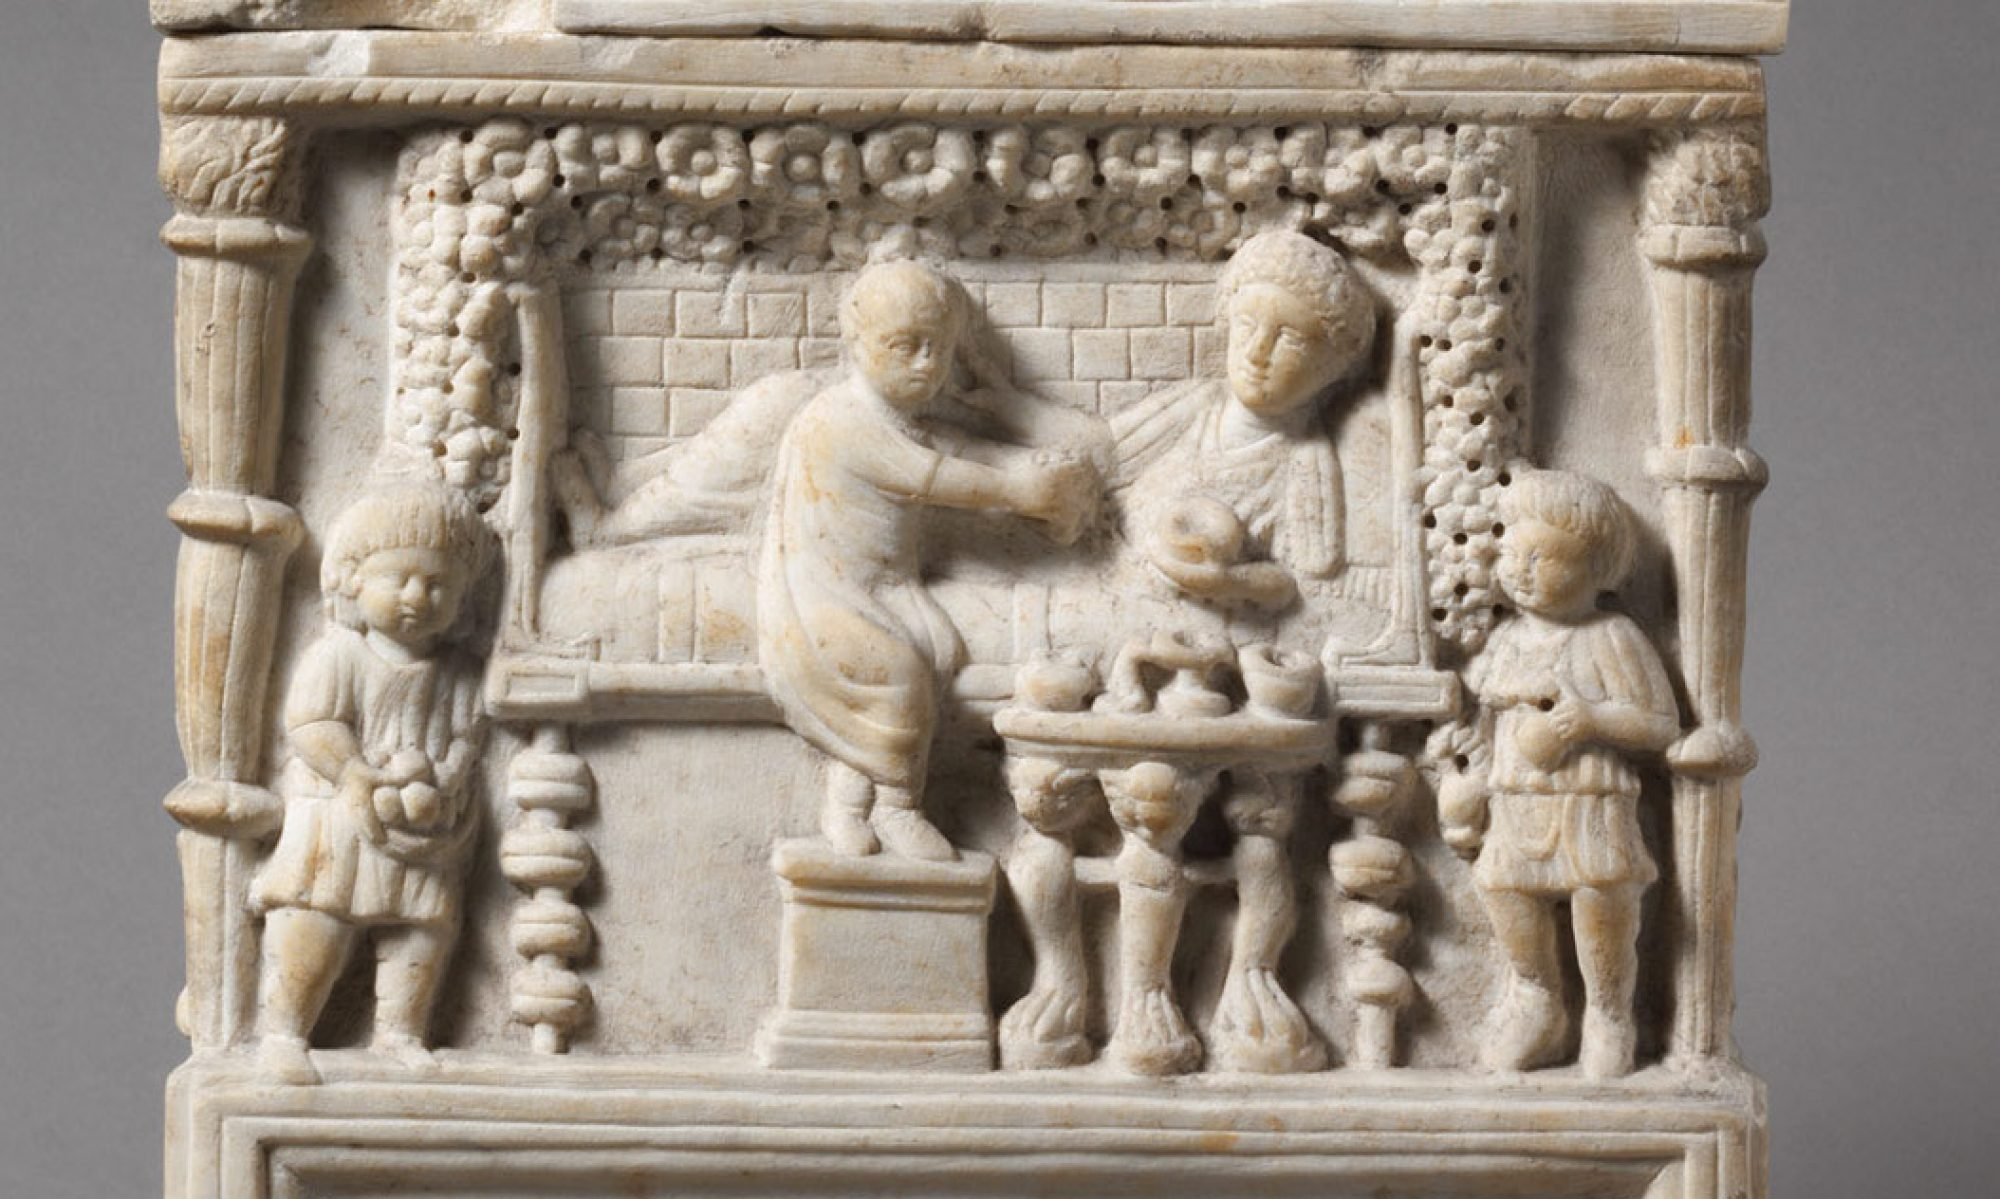 Roman Imperial Cinerary Urns